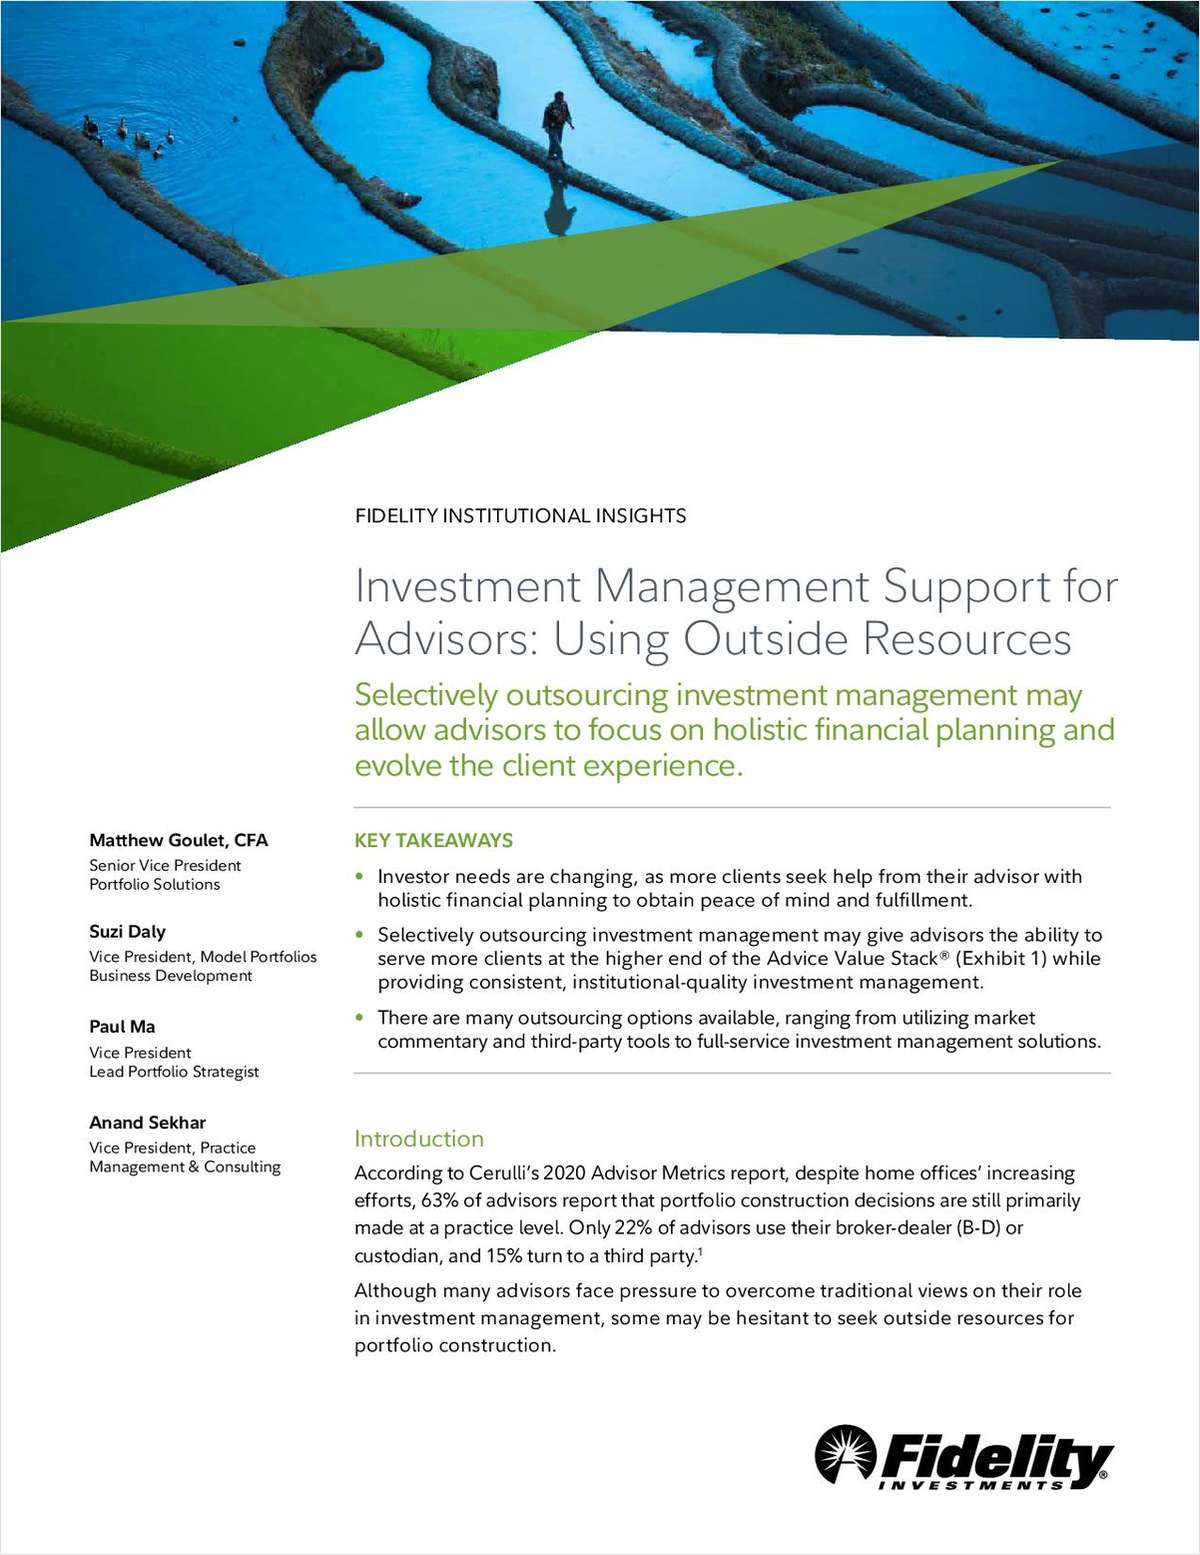 Investment Management Support for Advisors: Using Outside Resources